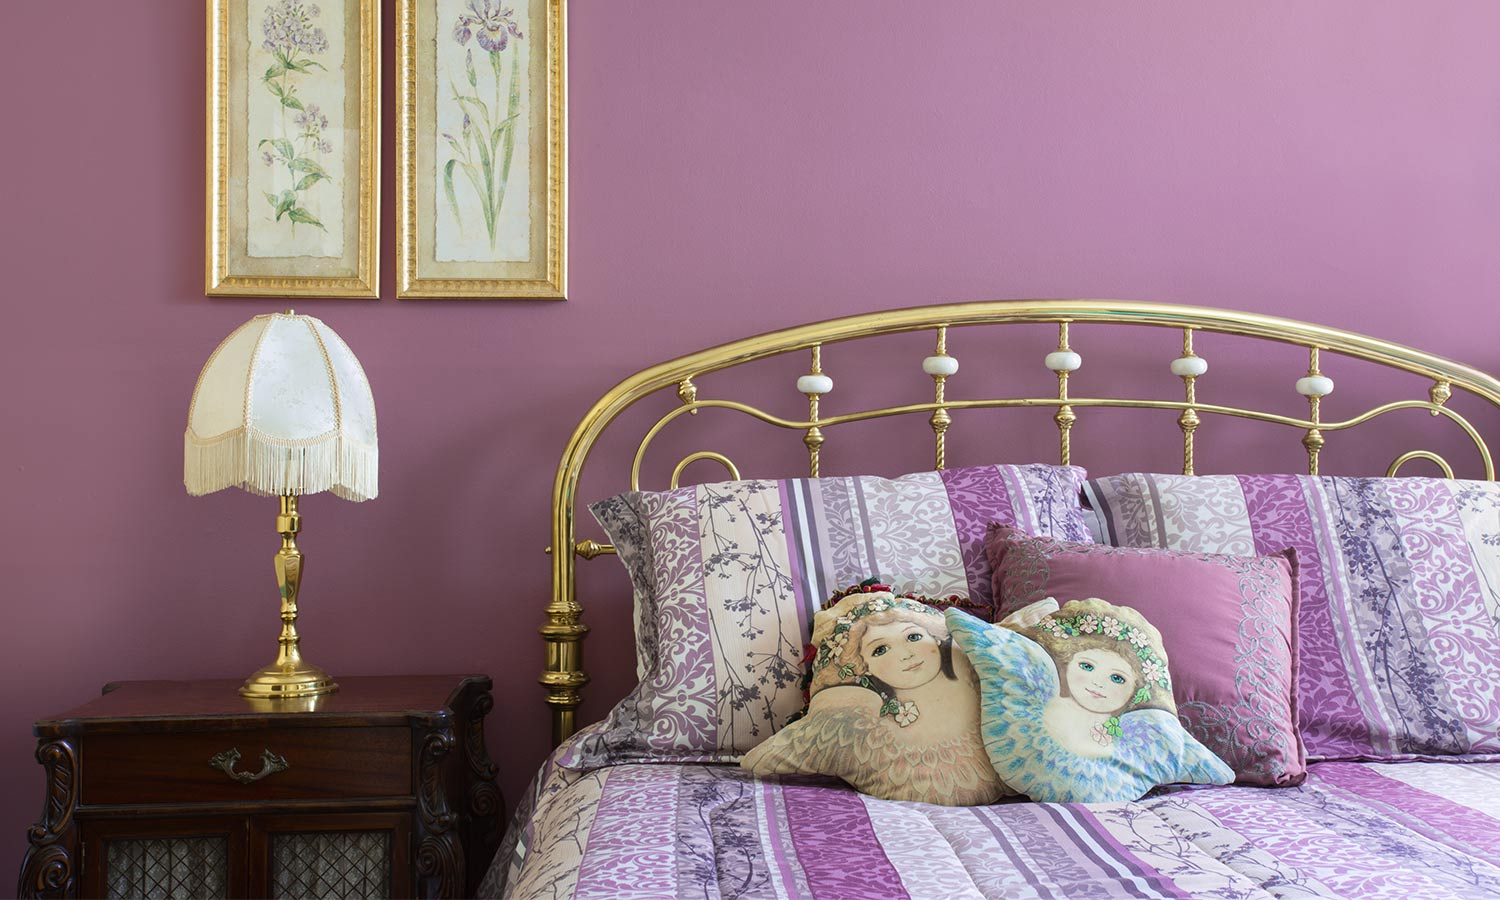 A rounded brass headboard and frame